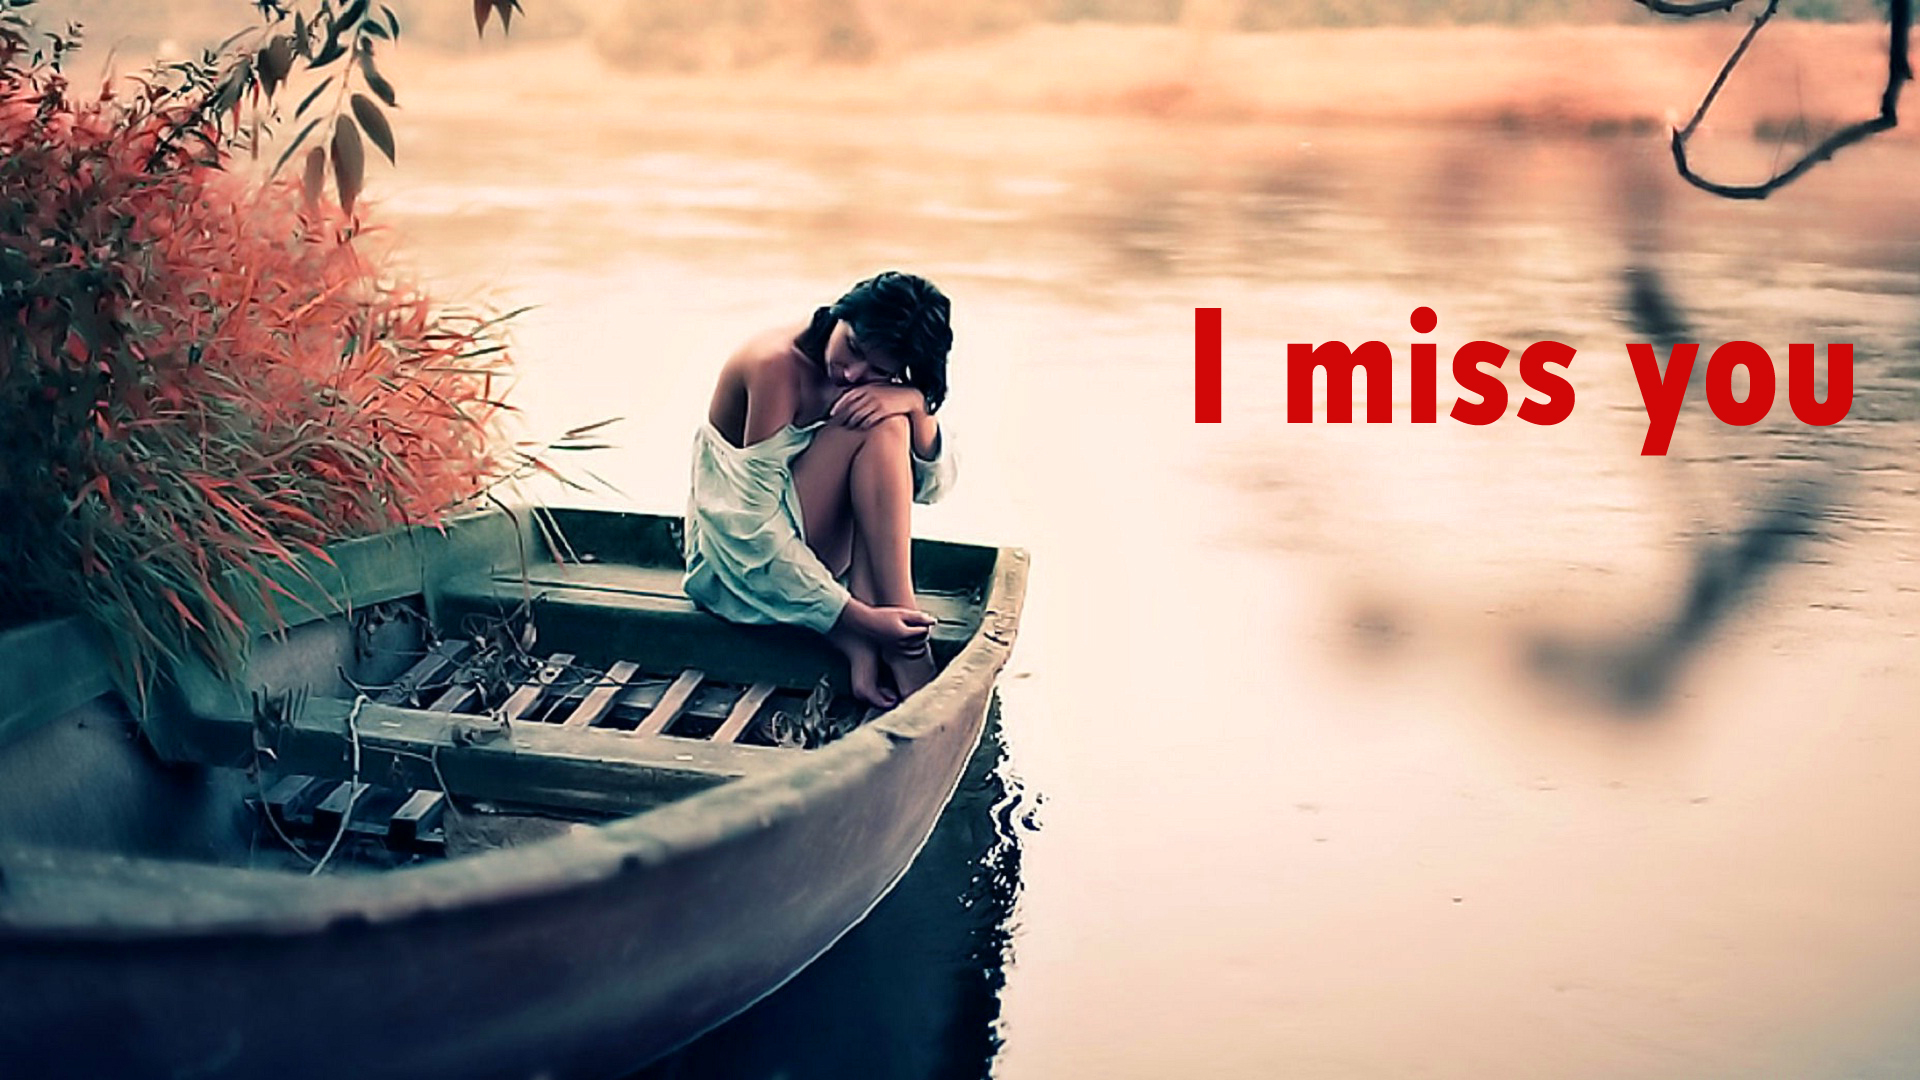 Wallpaper download i miss you - I Miss U You Wallpaper Free Download